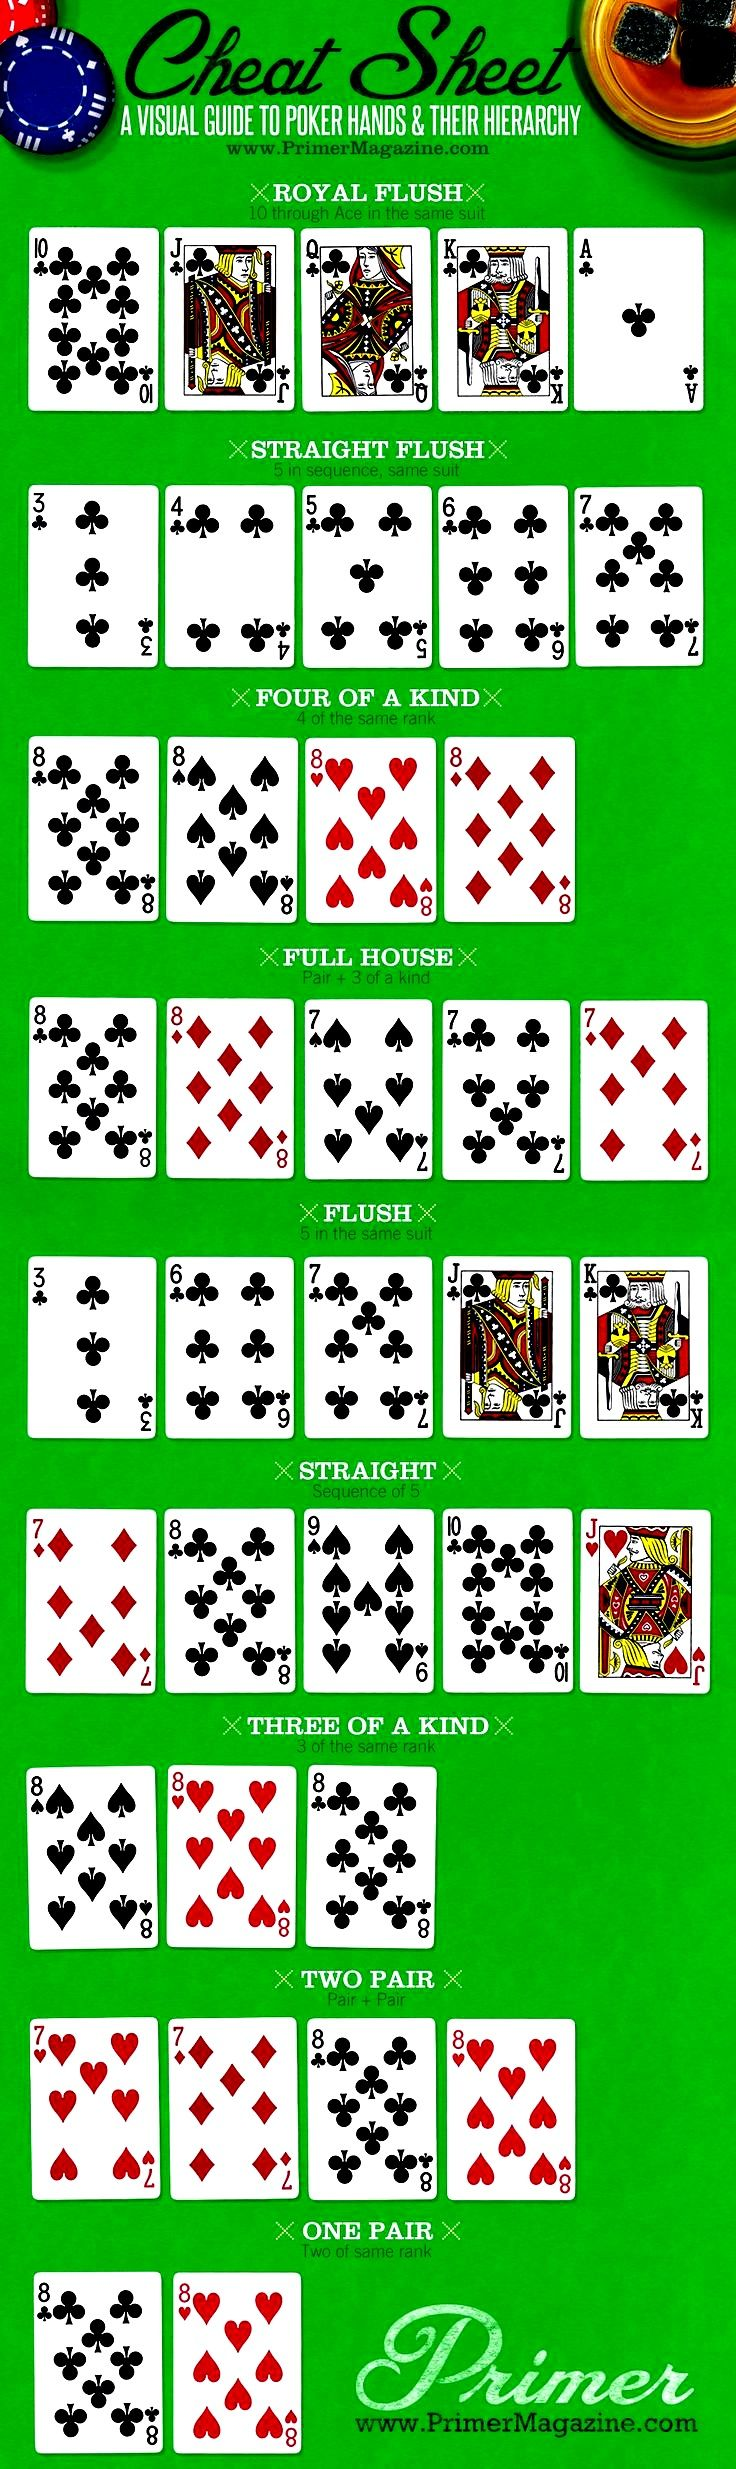 how to play 5 card stud